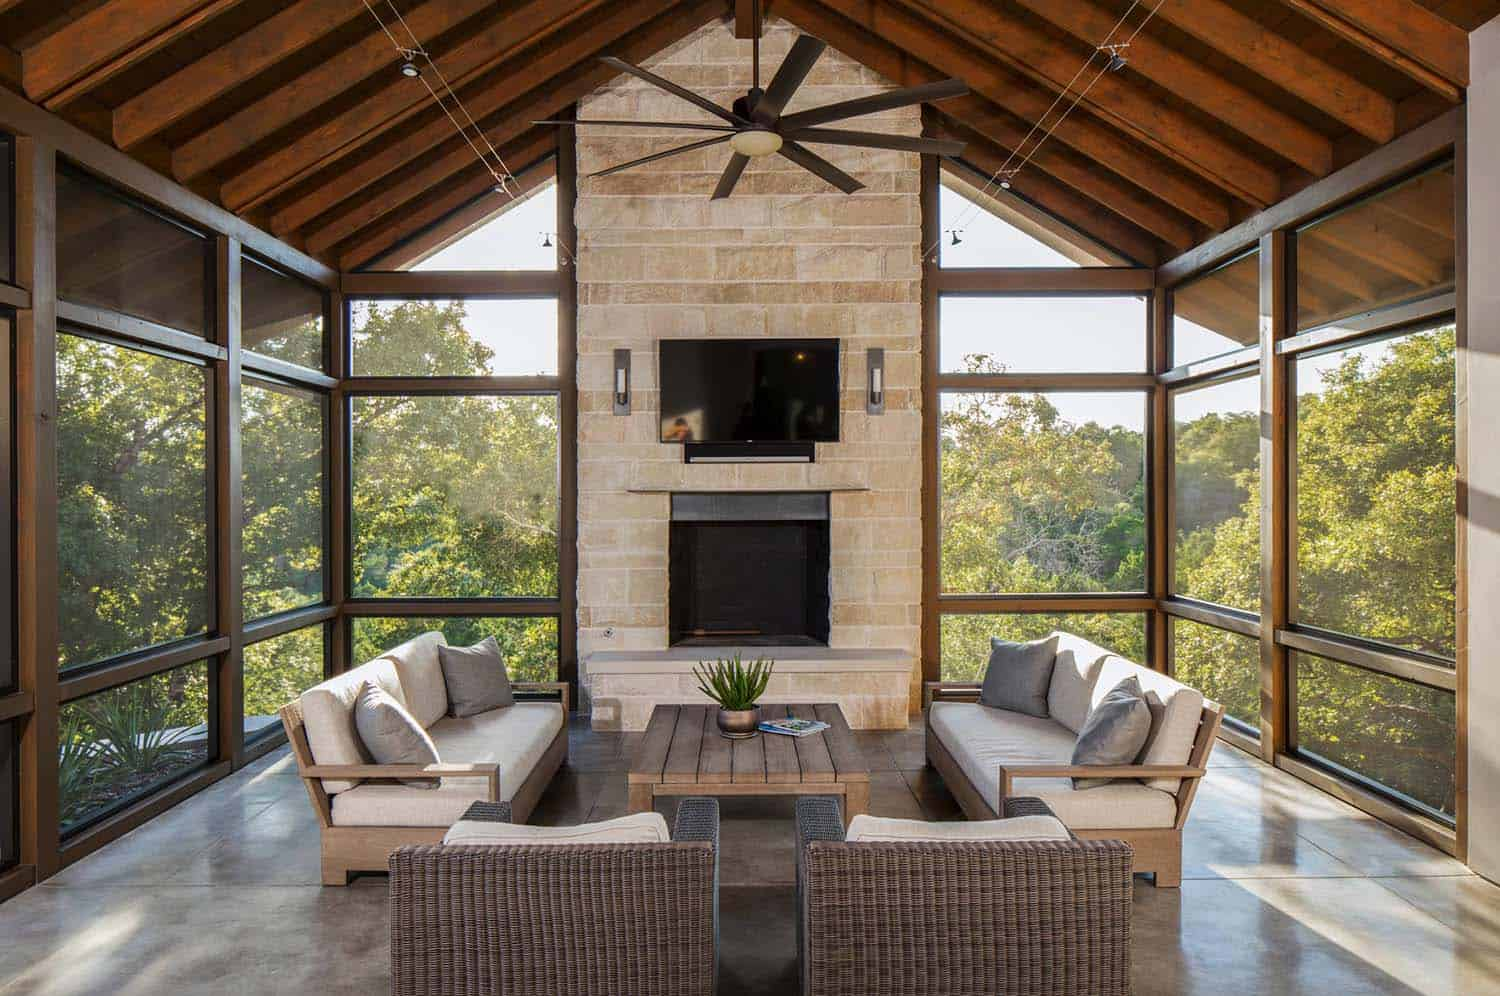 38 amazingly cozy and relaxing screened porch design ideas for Screen porch blueprints